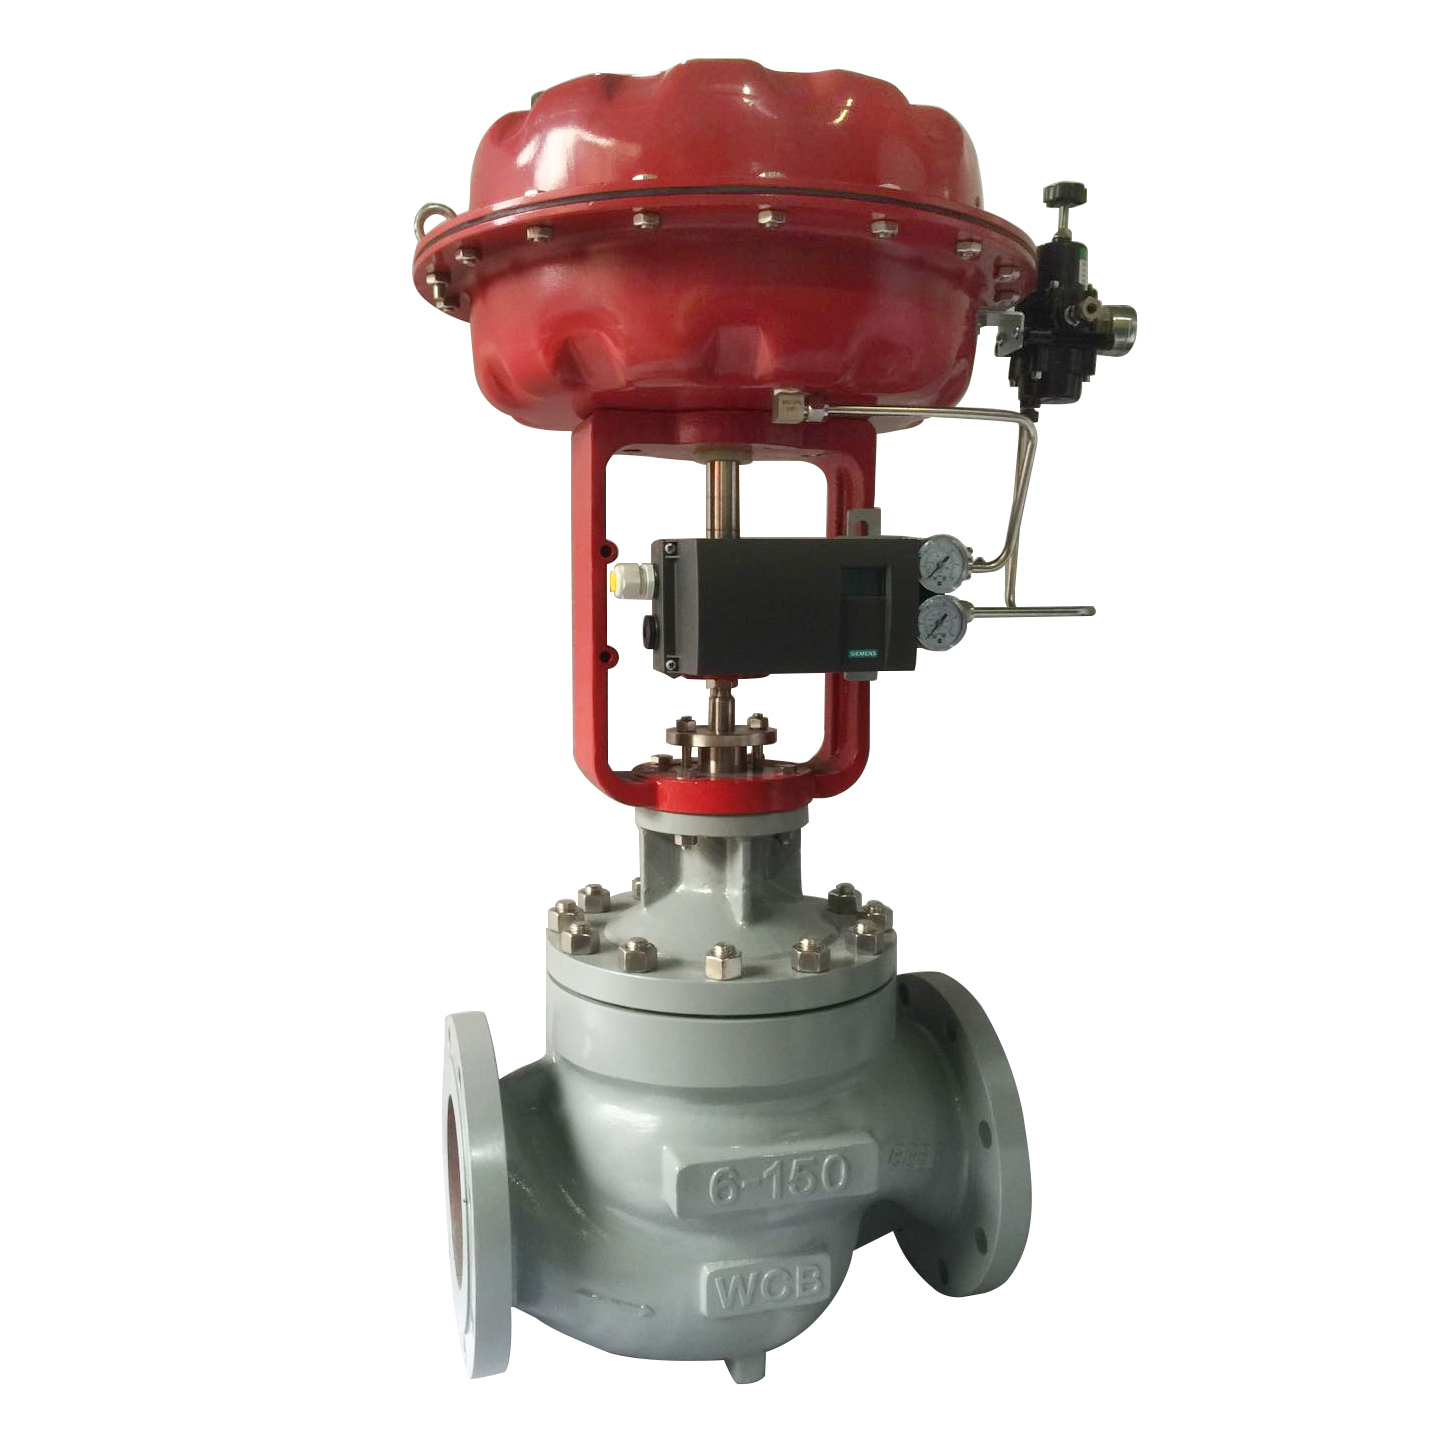 HLC Pneumatic Small-Port Cage-Guided Type Single-Seated Control Valve